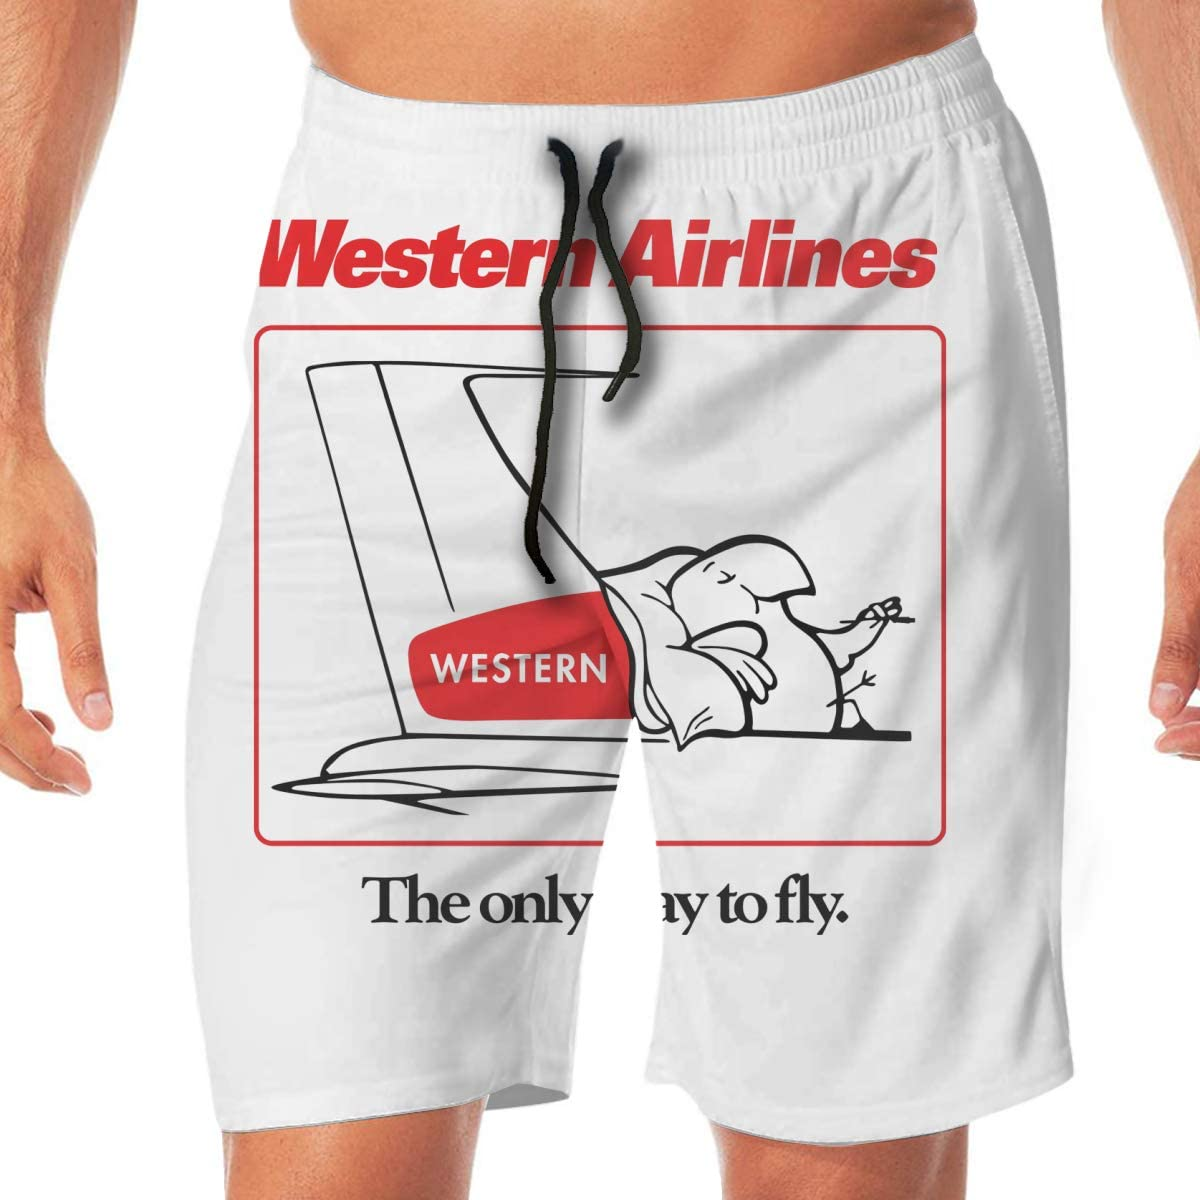 Western Airlines The Only Way to Fly Cartoon Bird Quick Dryswim Trunks Water Shorts Swimsuit Beach Shorts